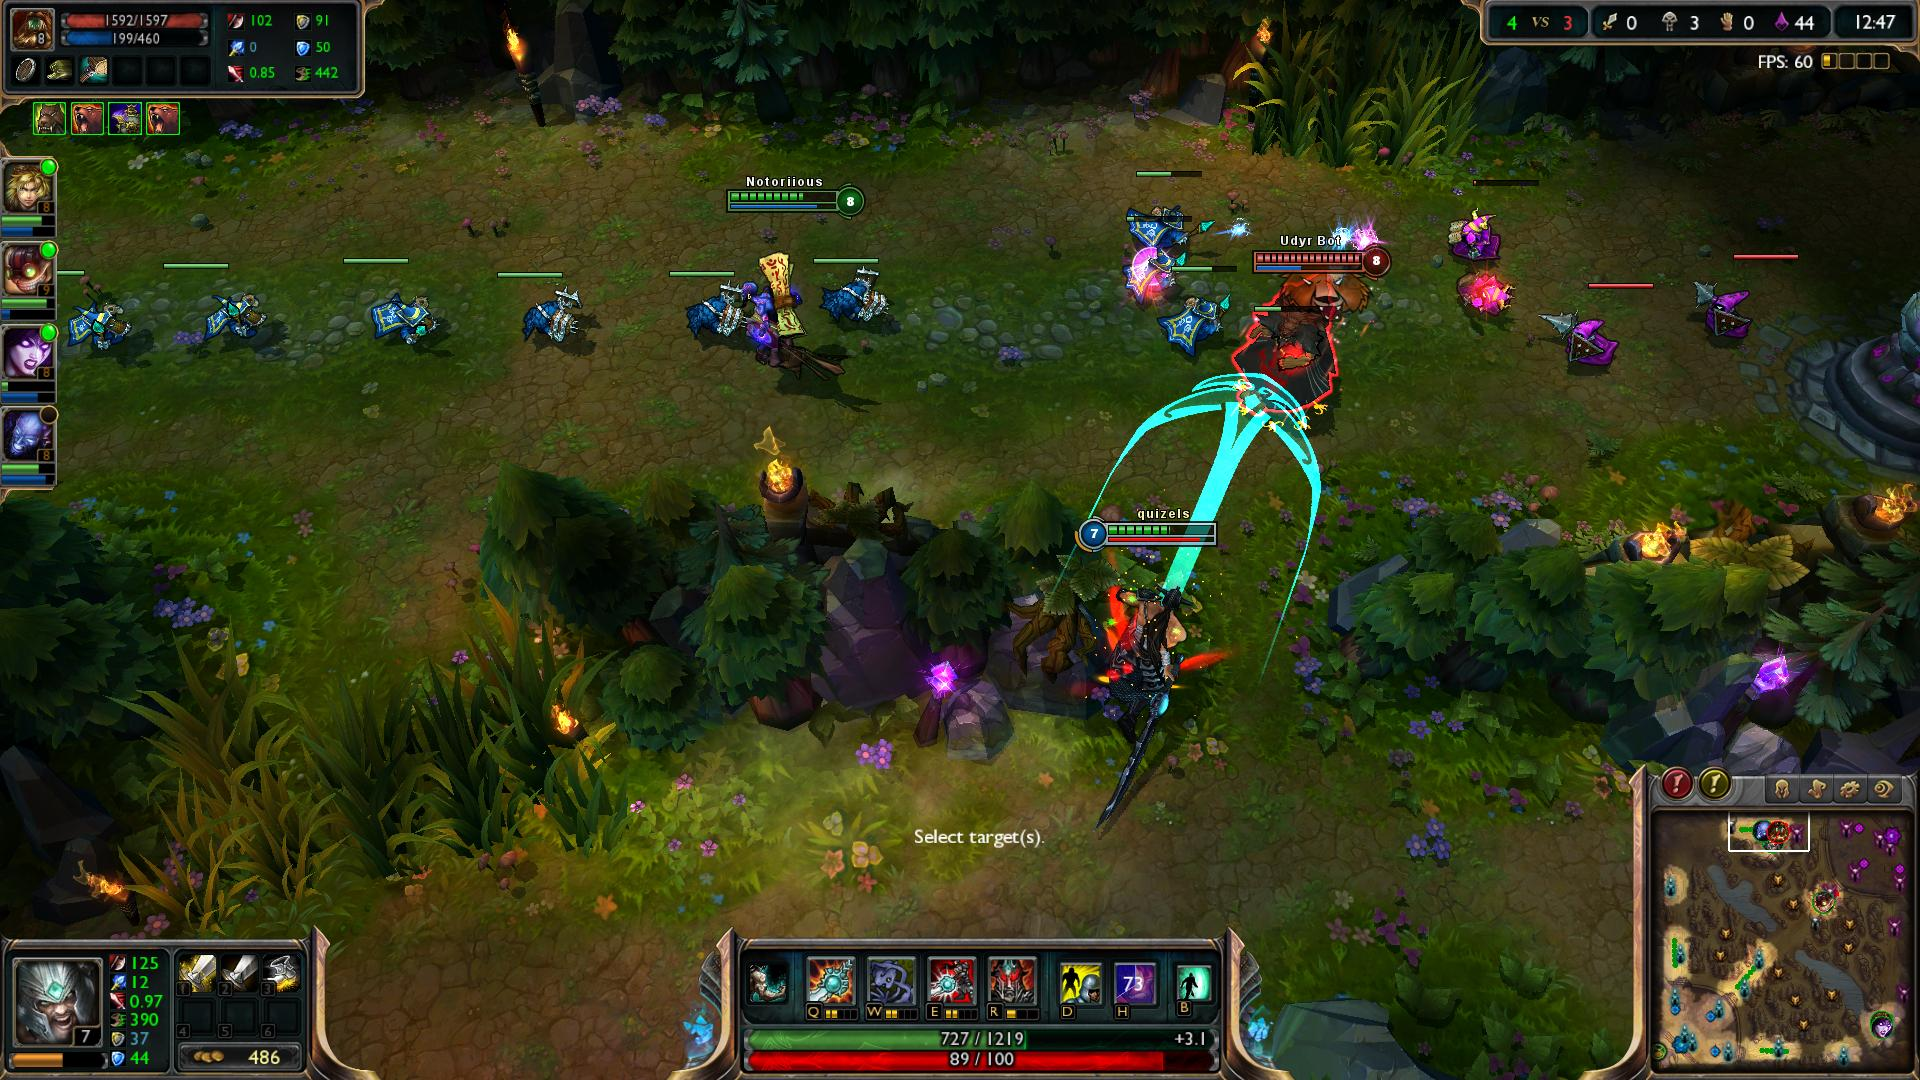 Spinning Slash Tryndamere lol lol screenshot